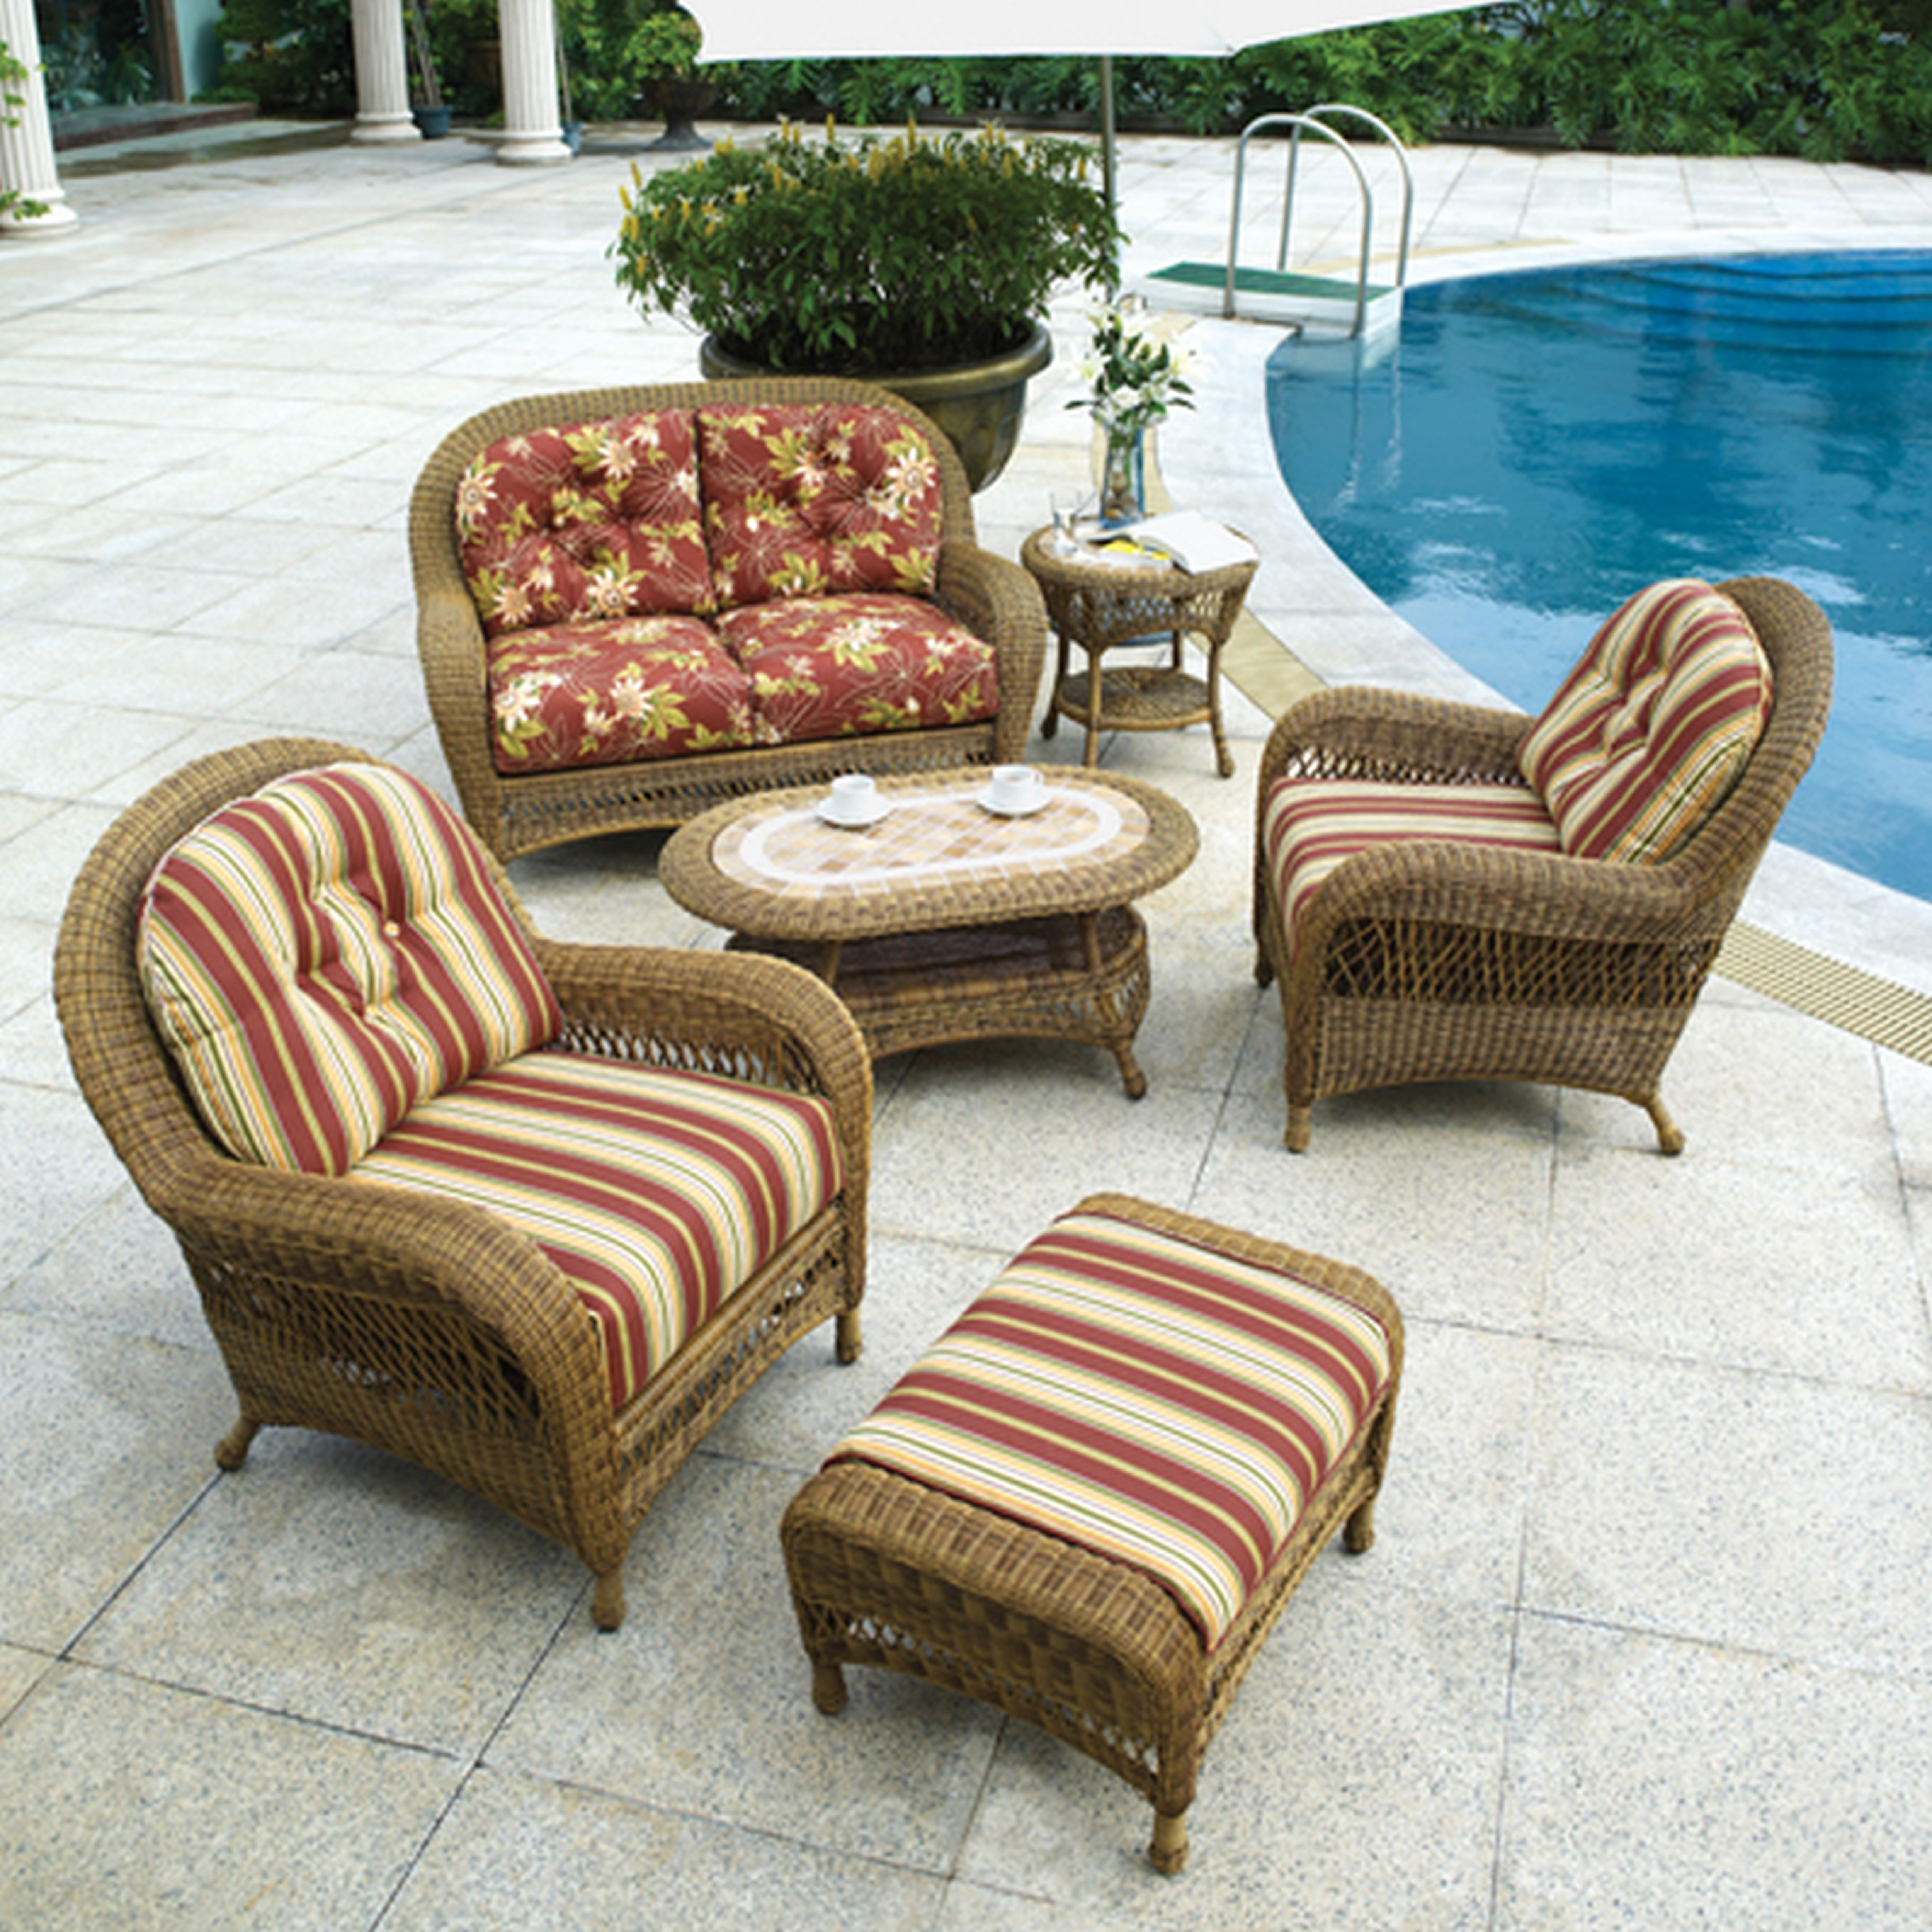 Chair : Magnificent Wicker Chair With Ottoman Additional Styles Of Intended For Latest Patio Conversation Sets With Ottoman (View 8 of 20)